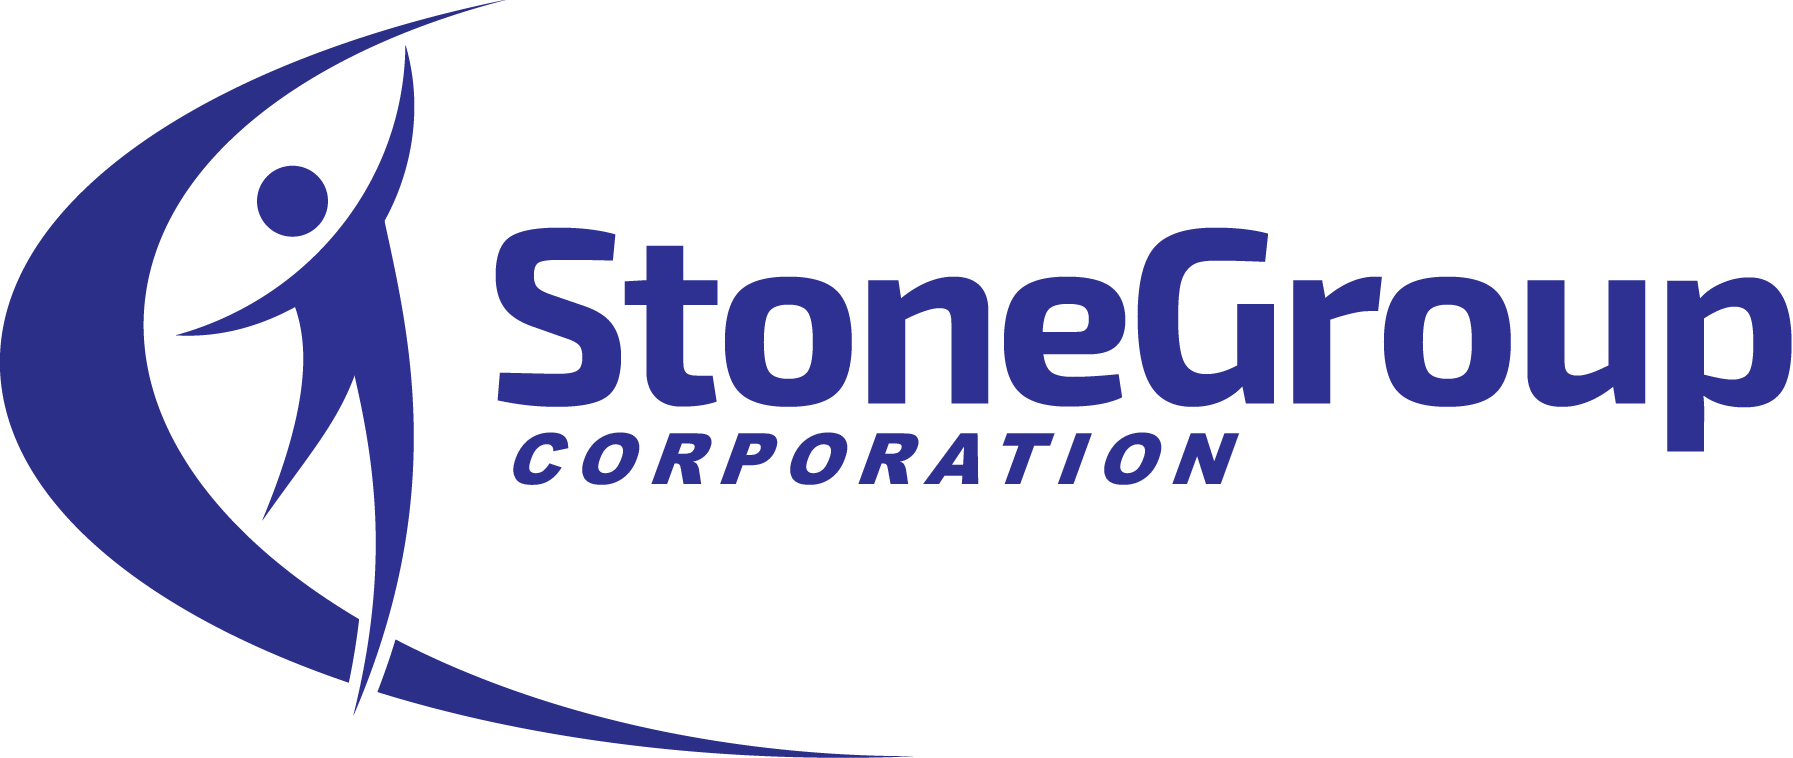 StoneGroup Corporation